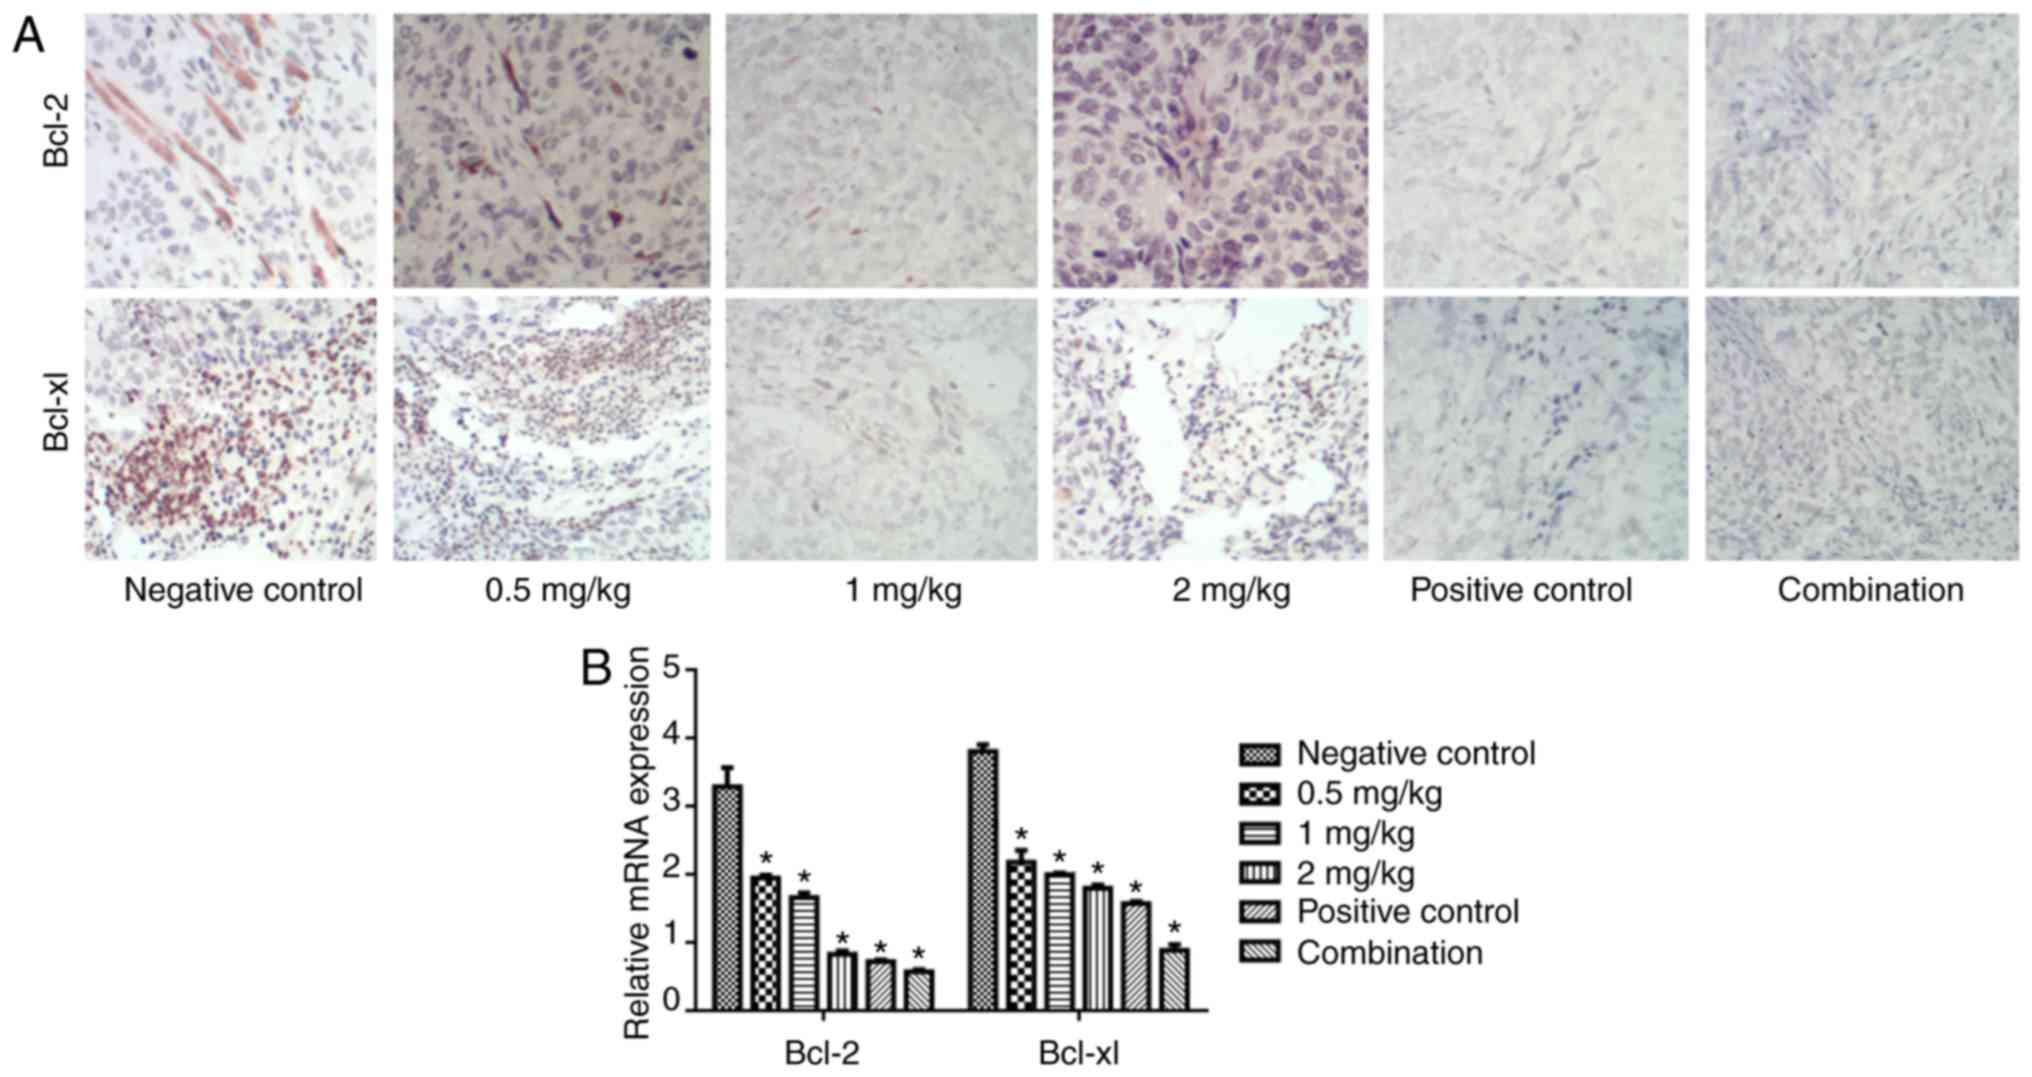 Naringin inhibits ovarian tumor growth by promoting apoptosis: An in